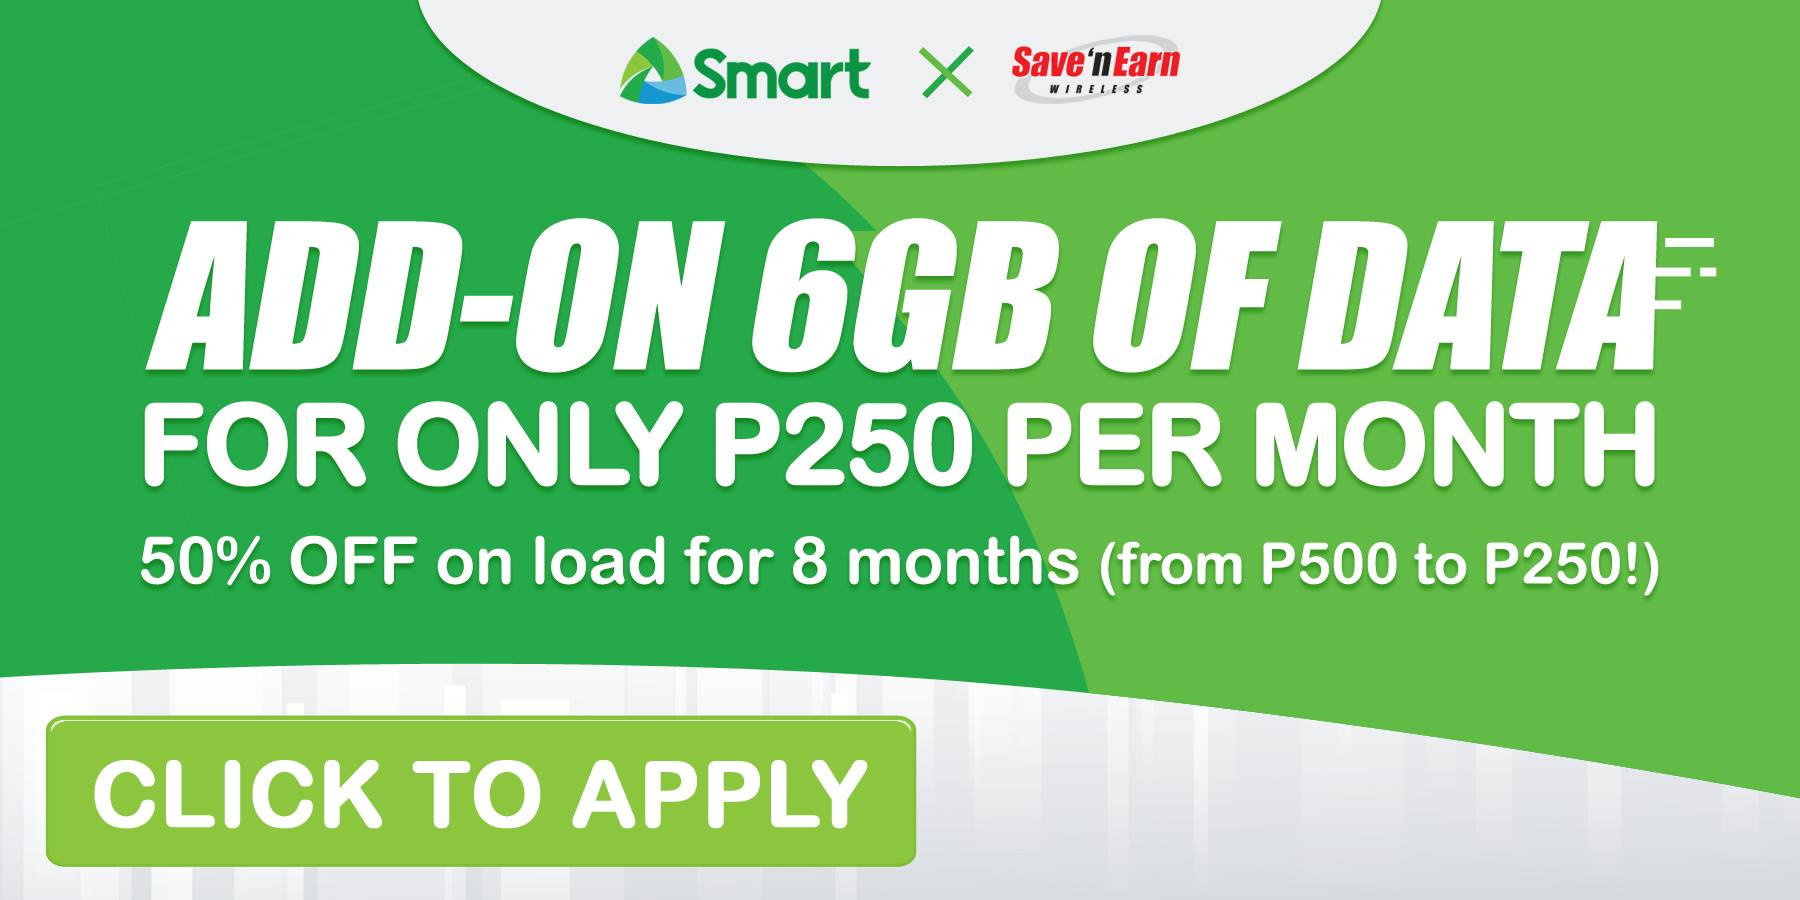 savenearn-postpaid-plan-499-6gb-data-50-percent-off